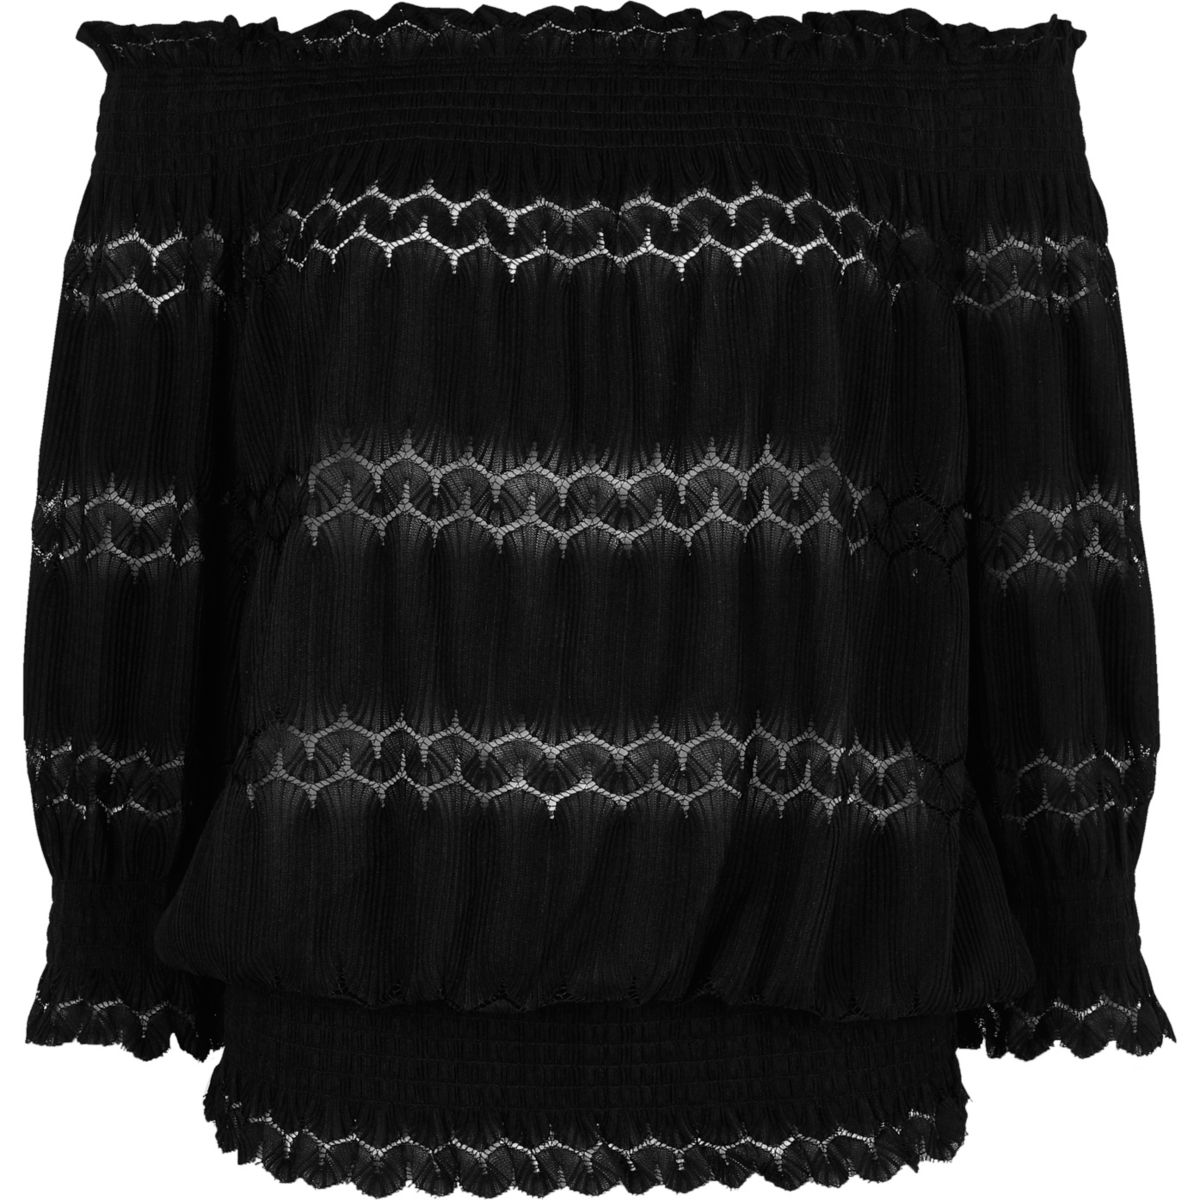 Black lace shirred bardot top